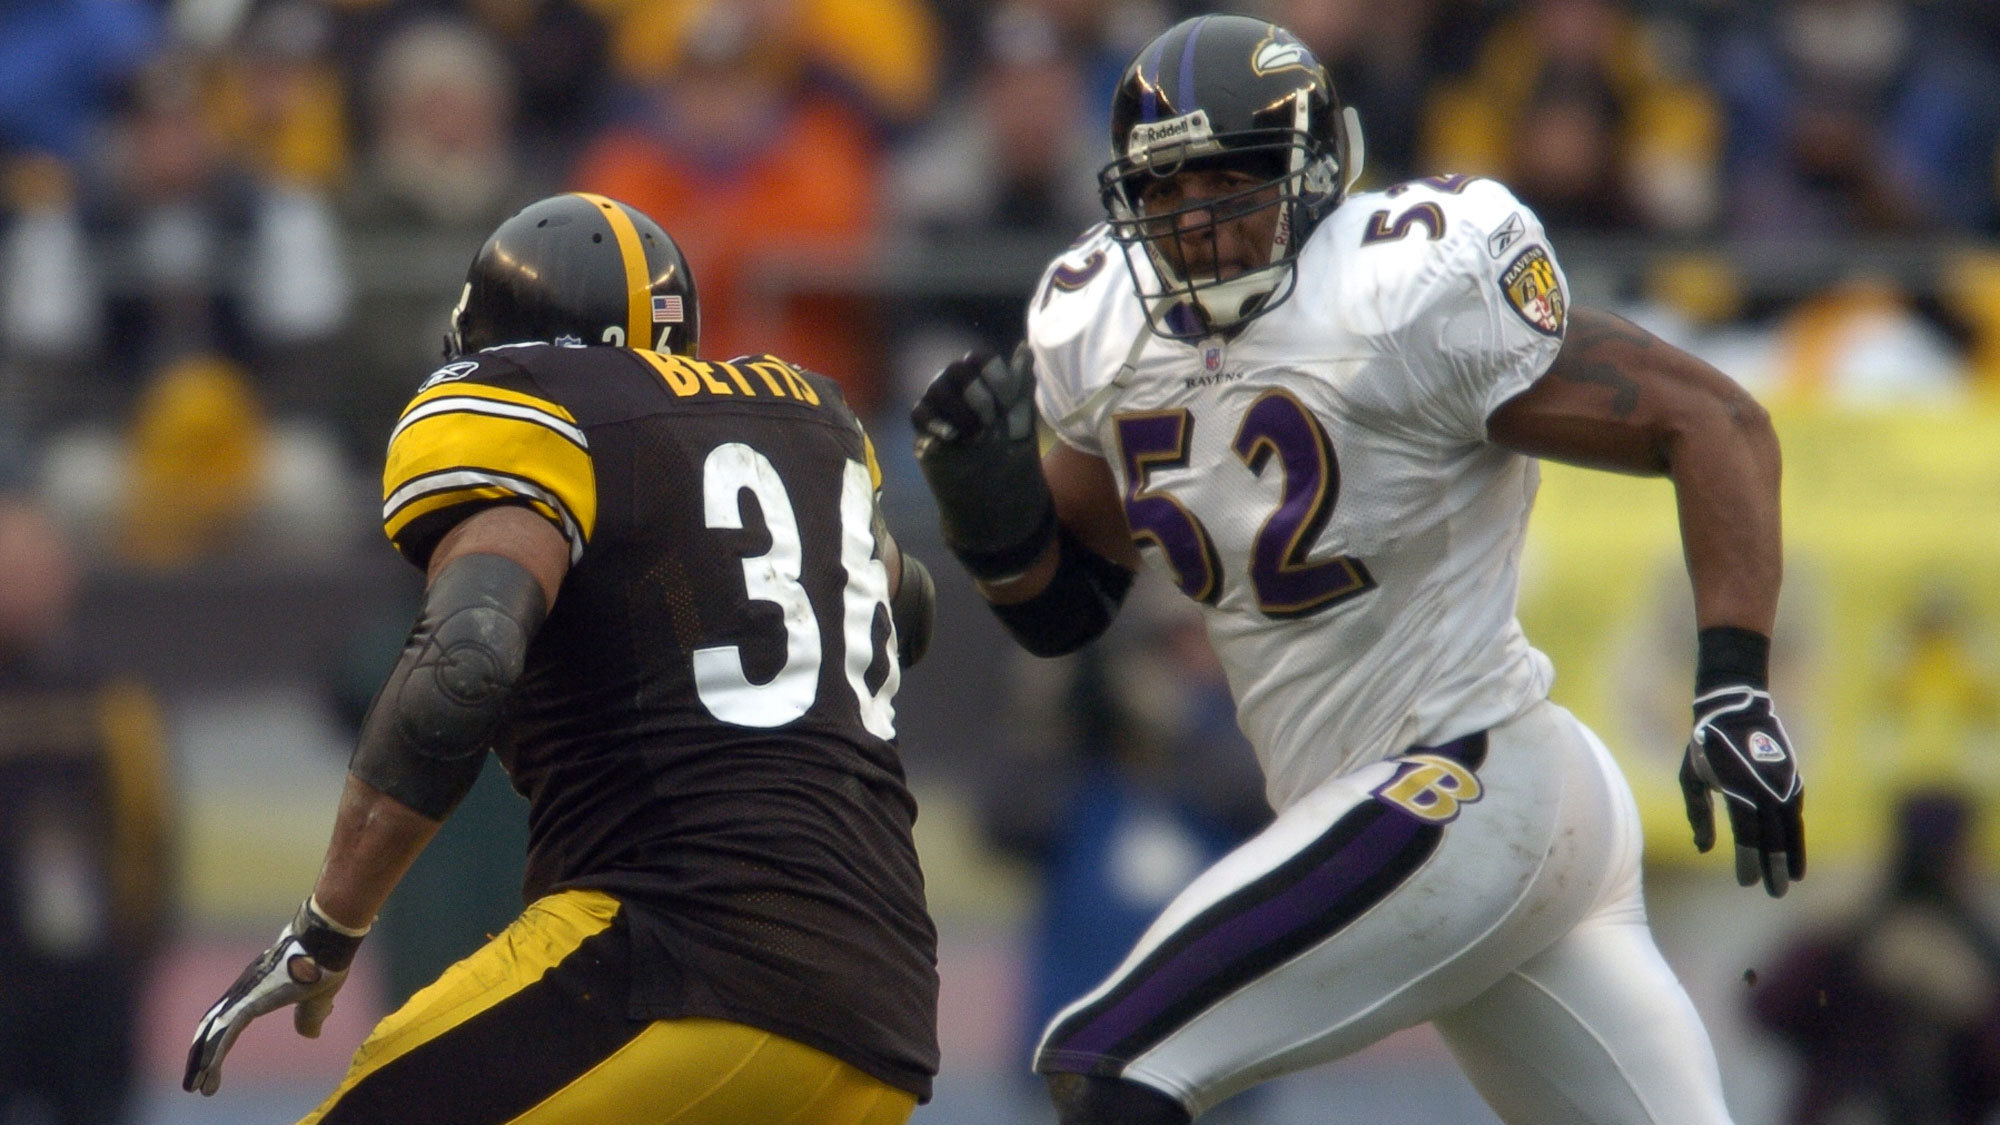 Ray Lewis Football Hits: In Honor Of Jerome Bettis' Hall Of Fame Selection, Watch